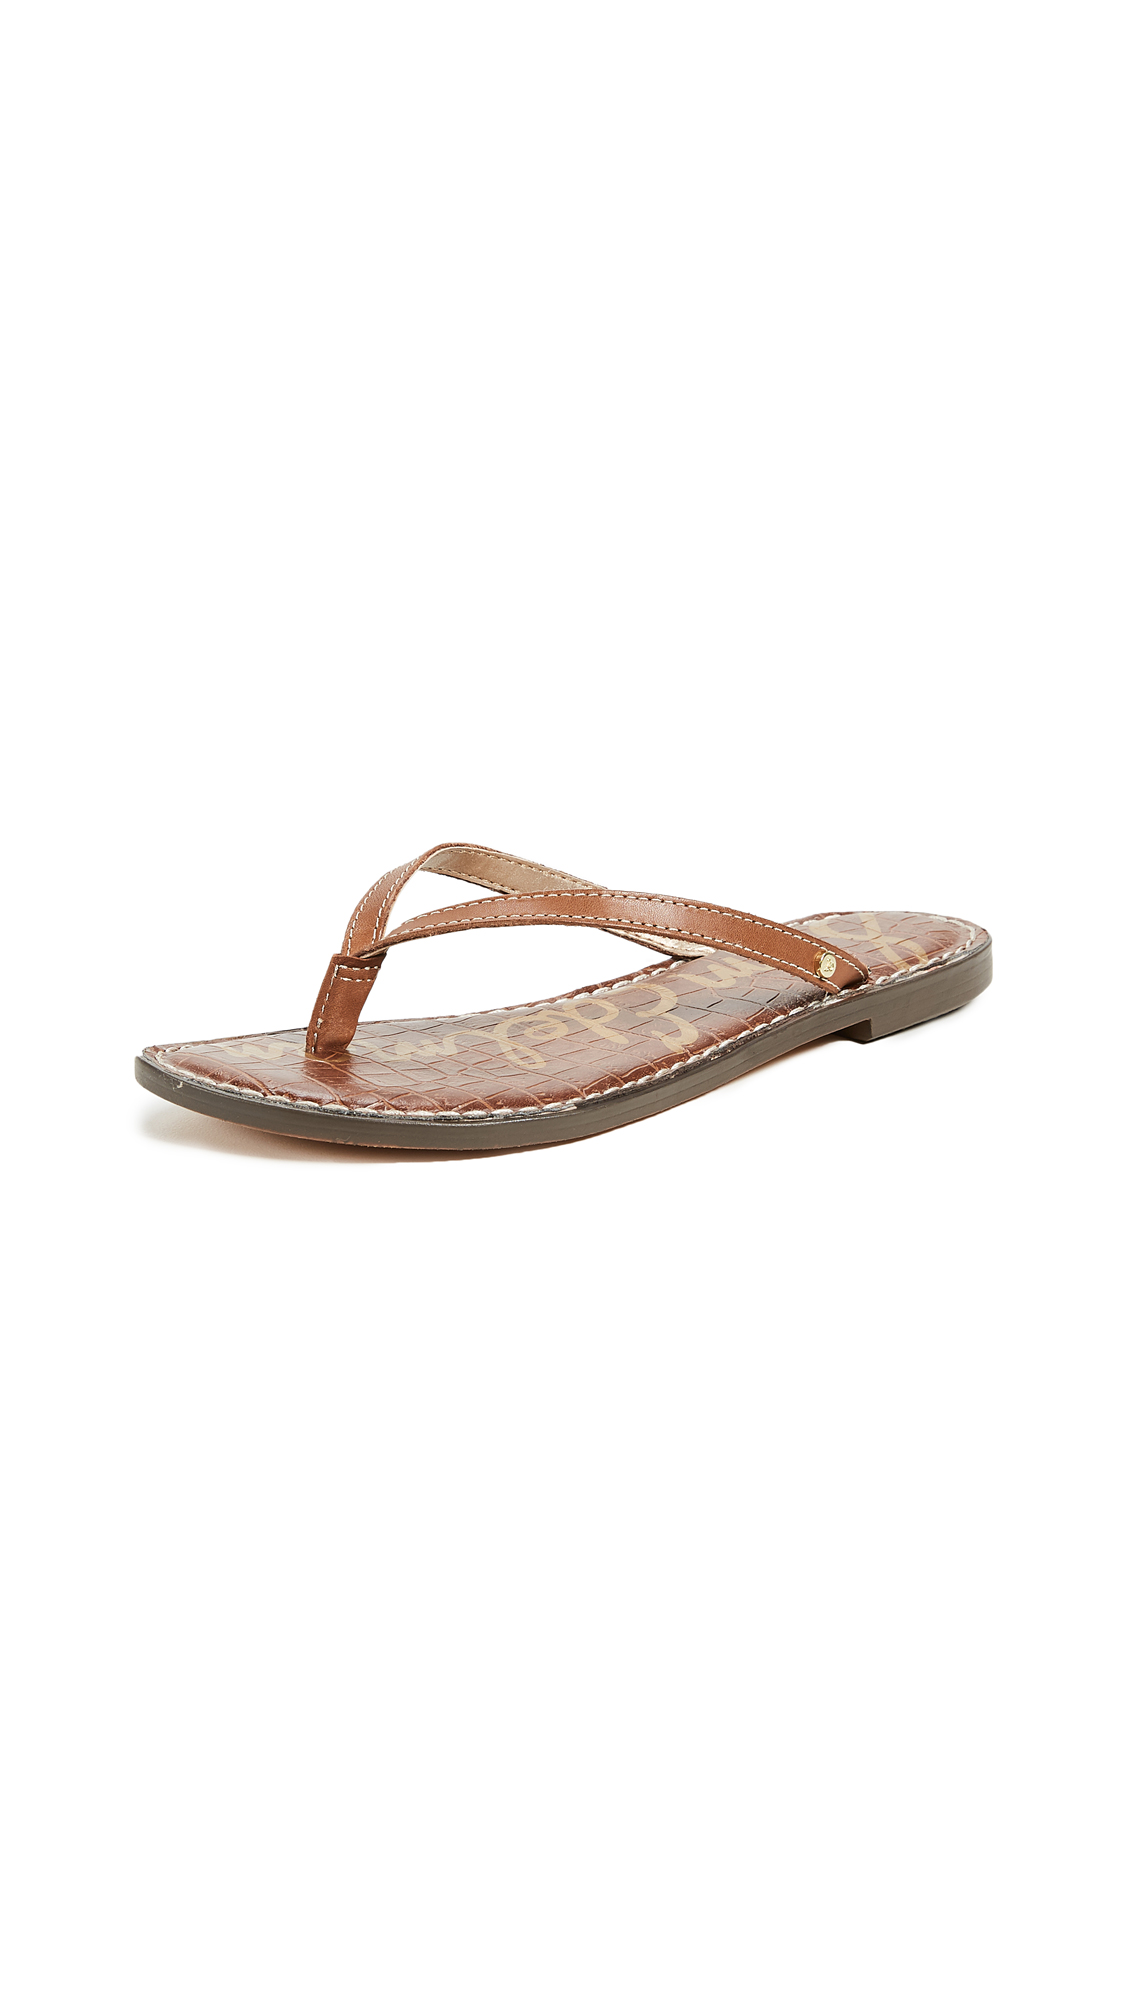 Sam Edelman Gracie Thong Sandals - Luggage